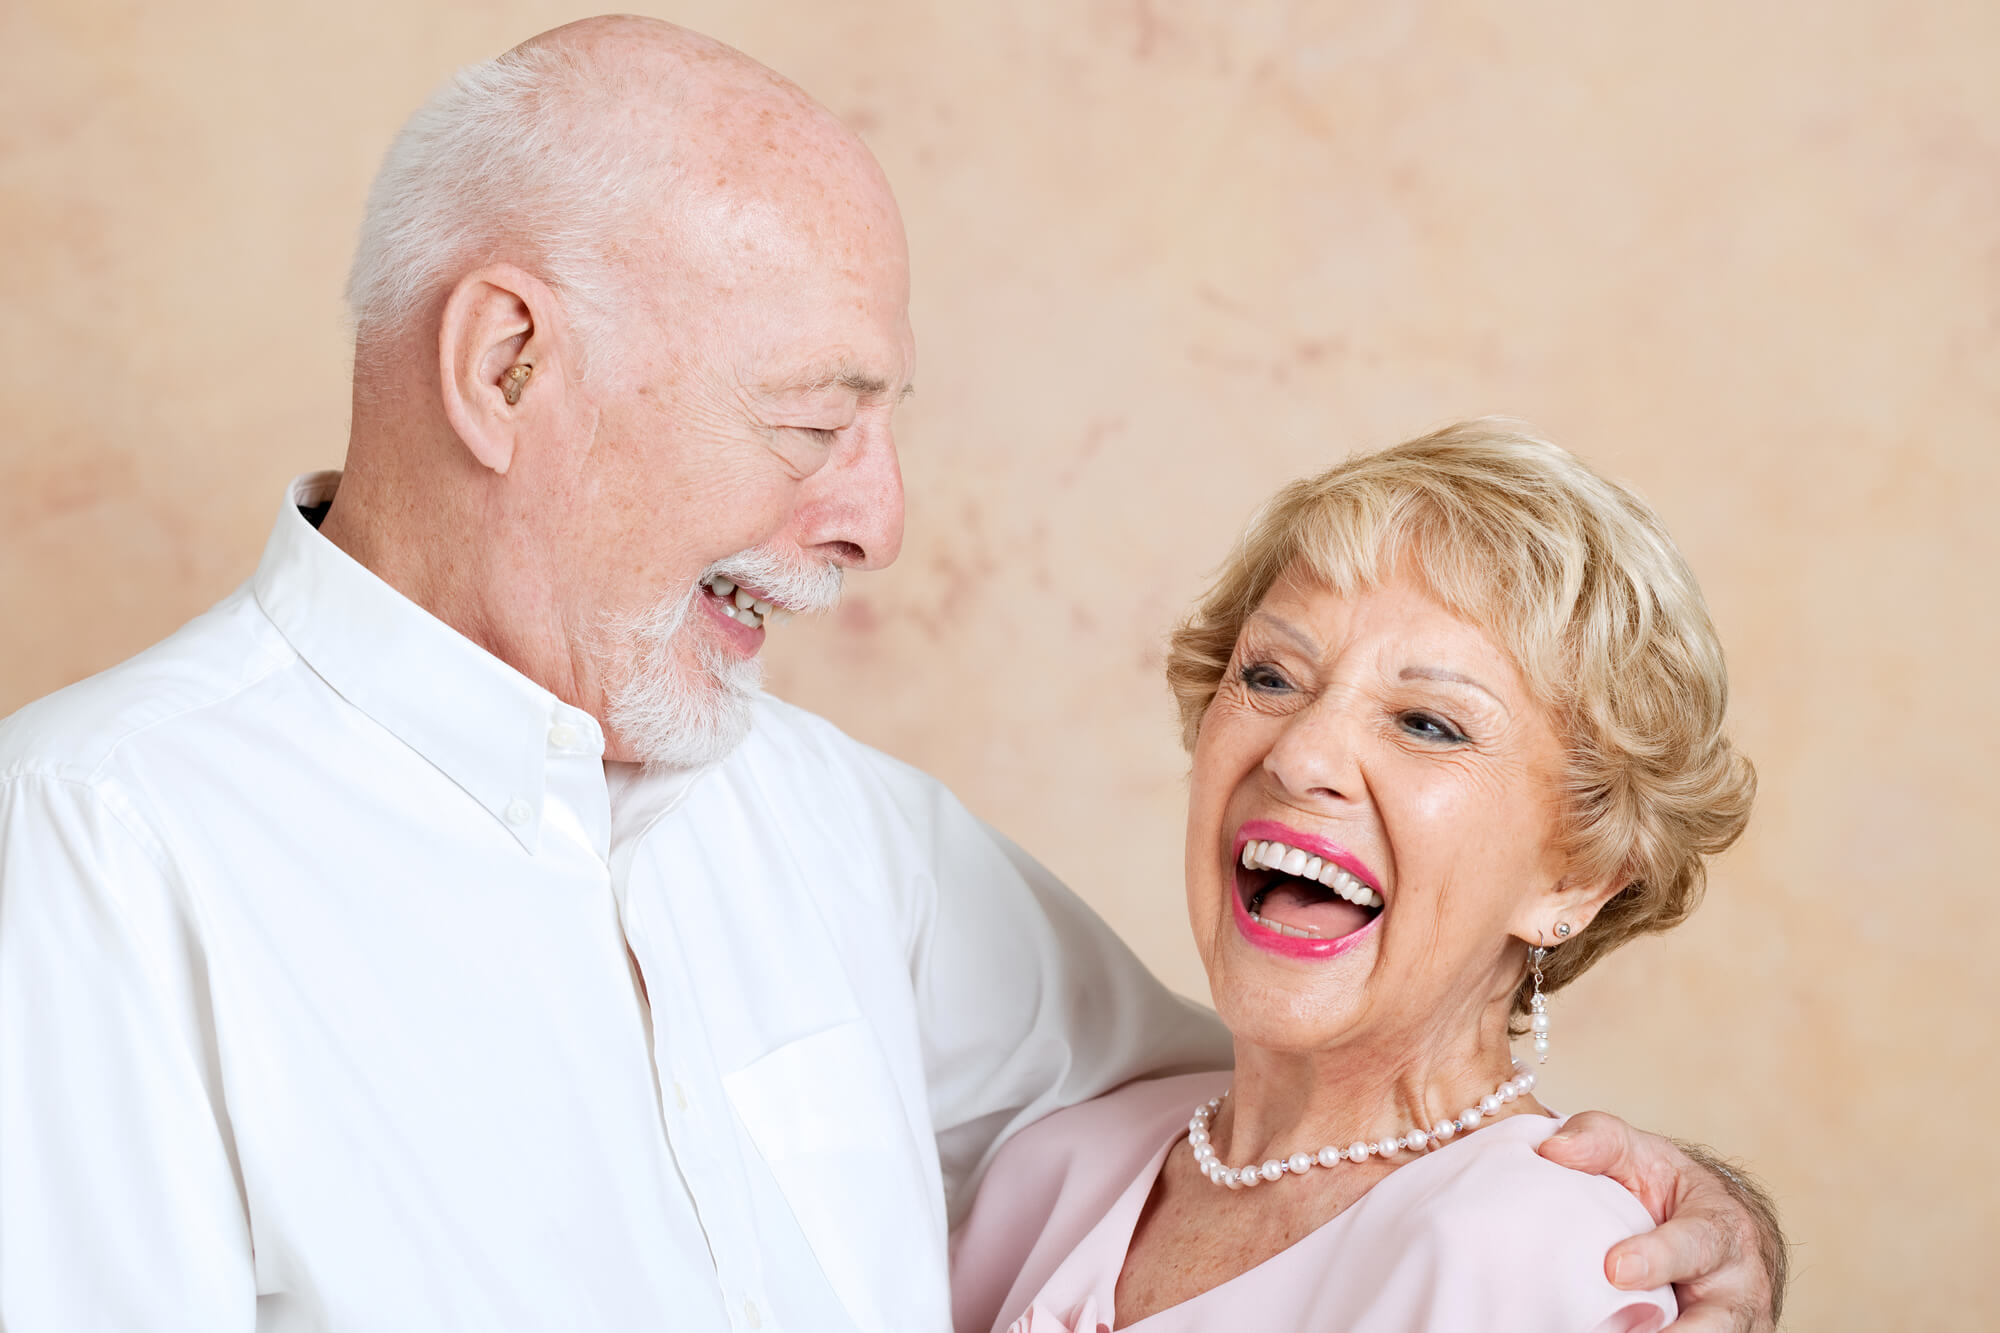 where is the best dentures tamiami?